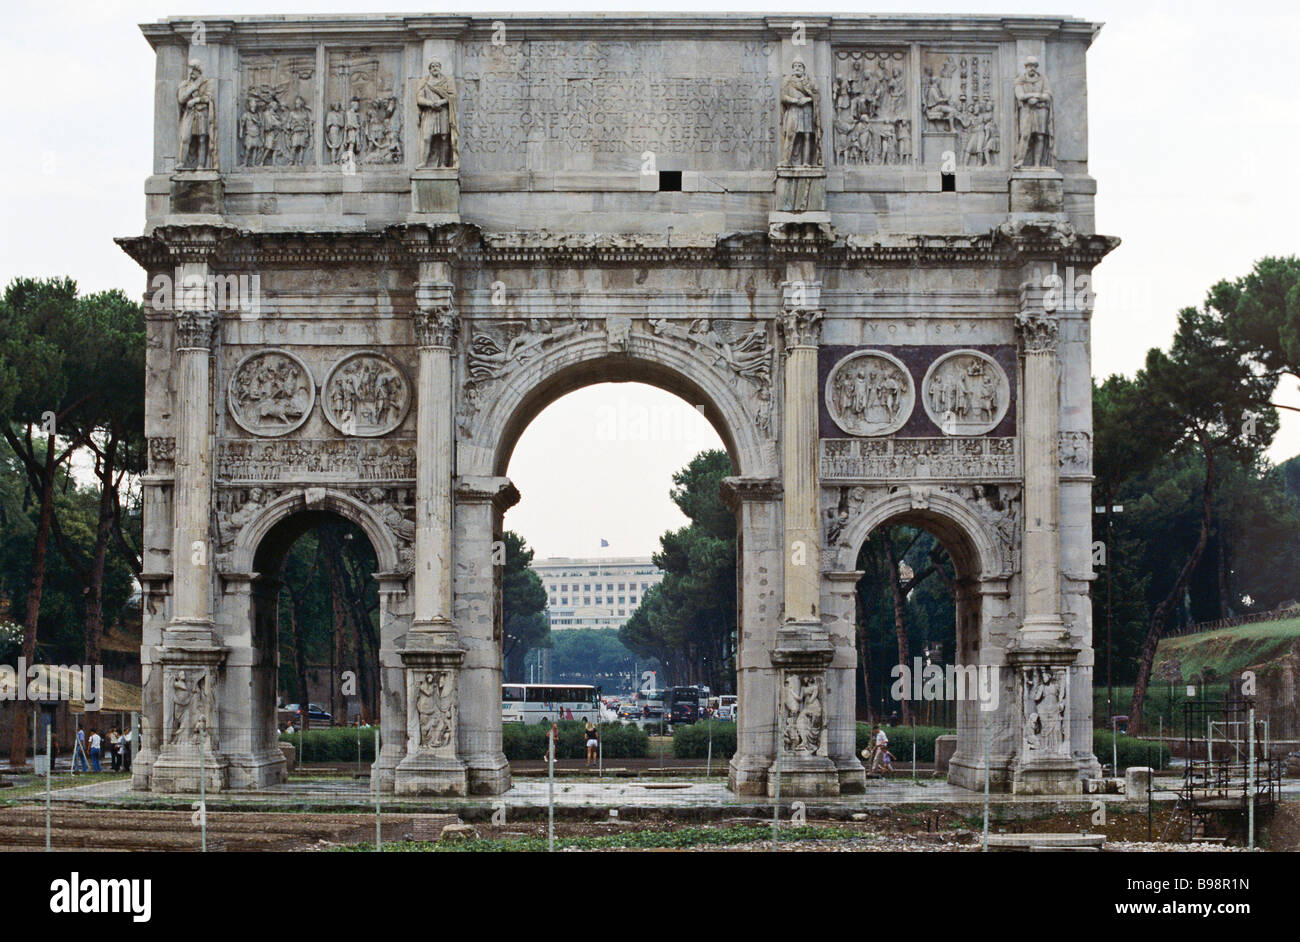 The Arch of Emperor Constantine built in 312 near the Coliseum - Stock Image